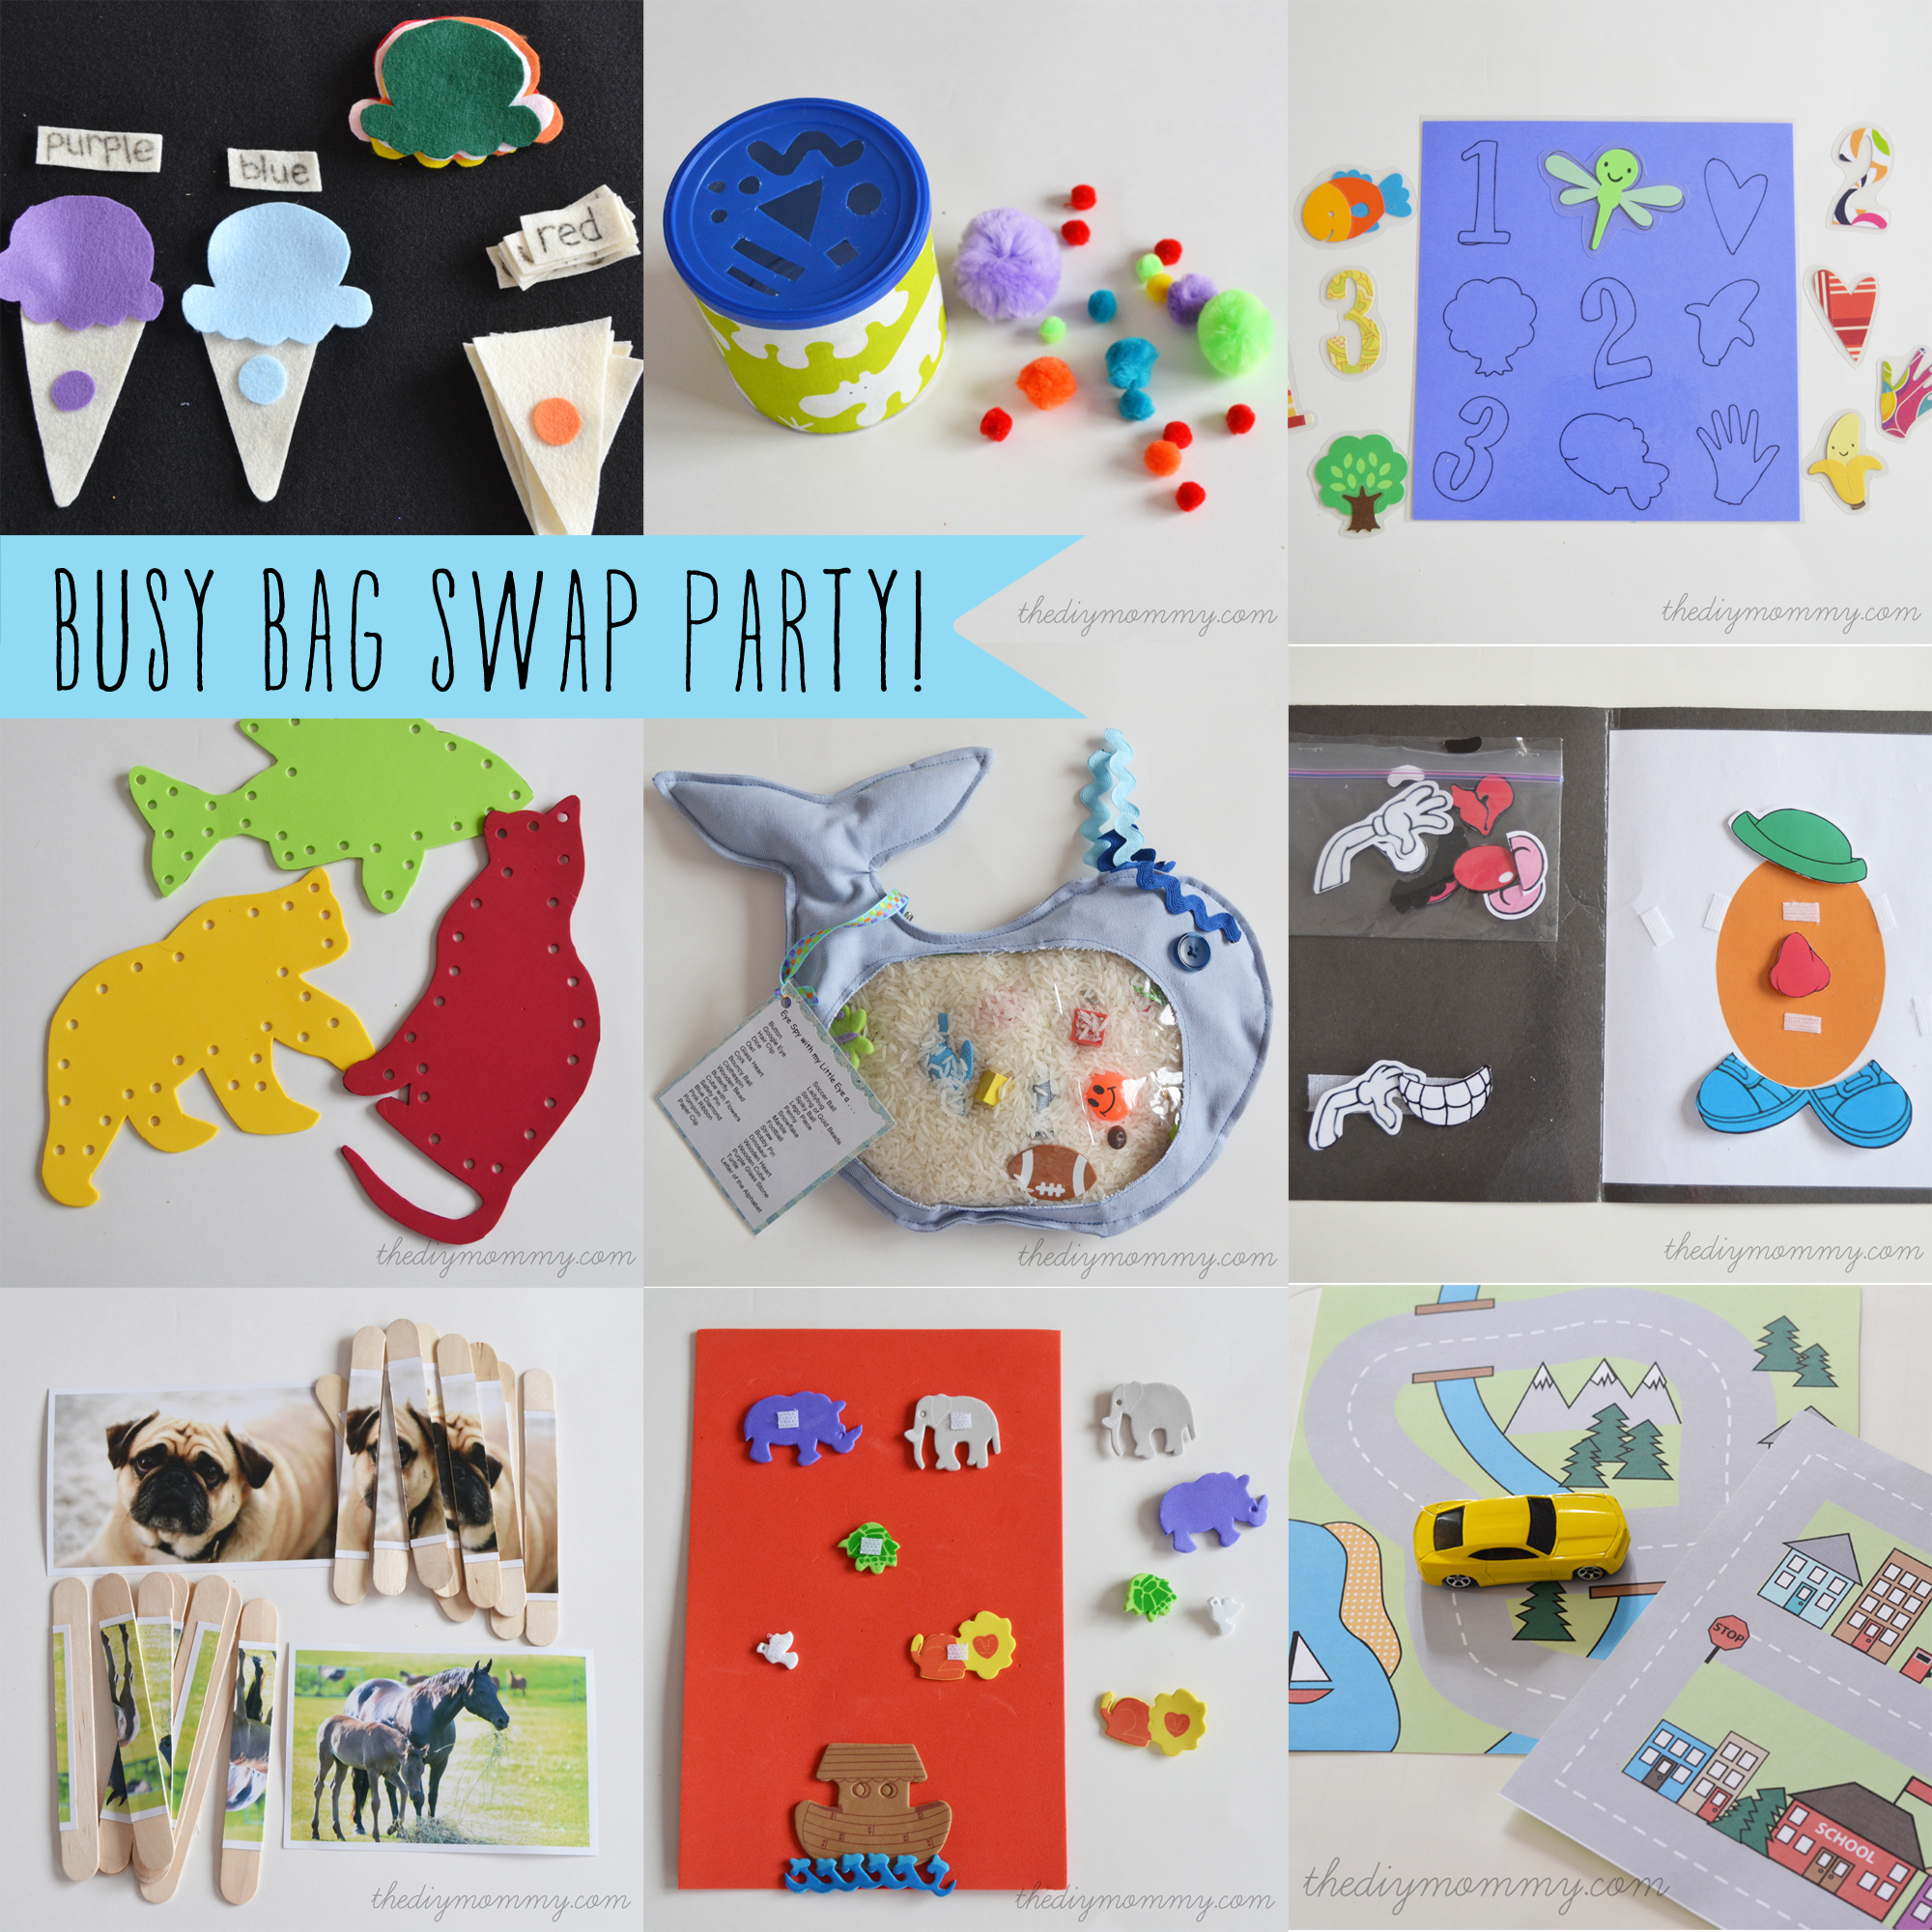 Toddler Busy Bag Swap Party - The DIY Mommy